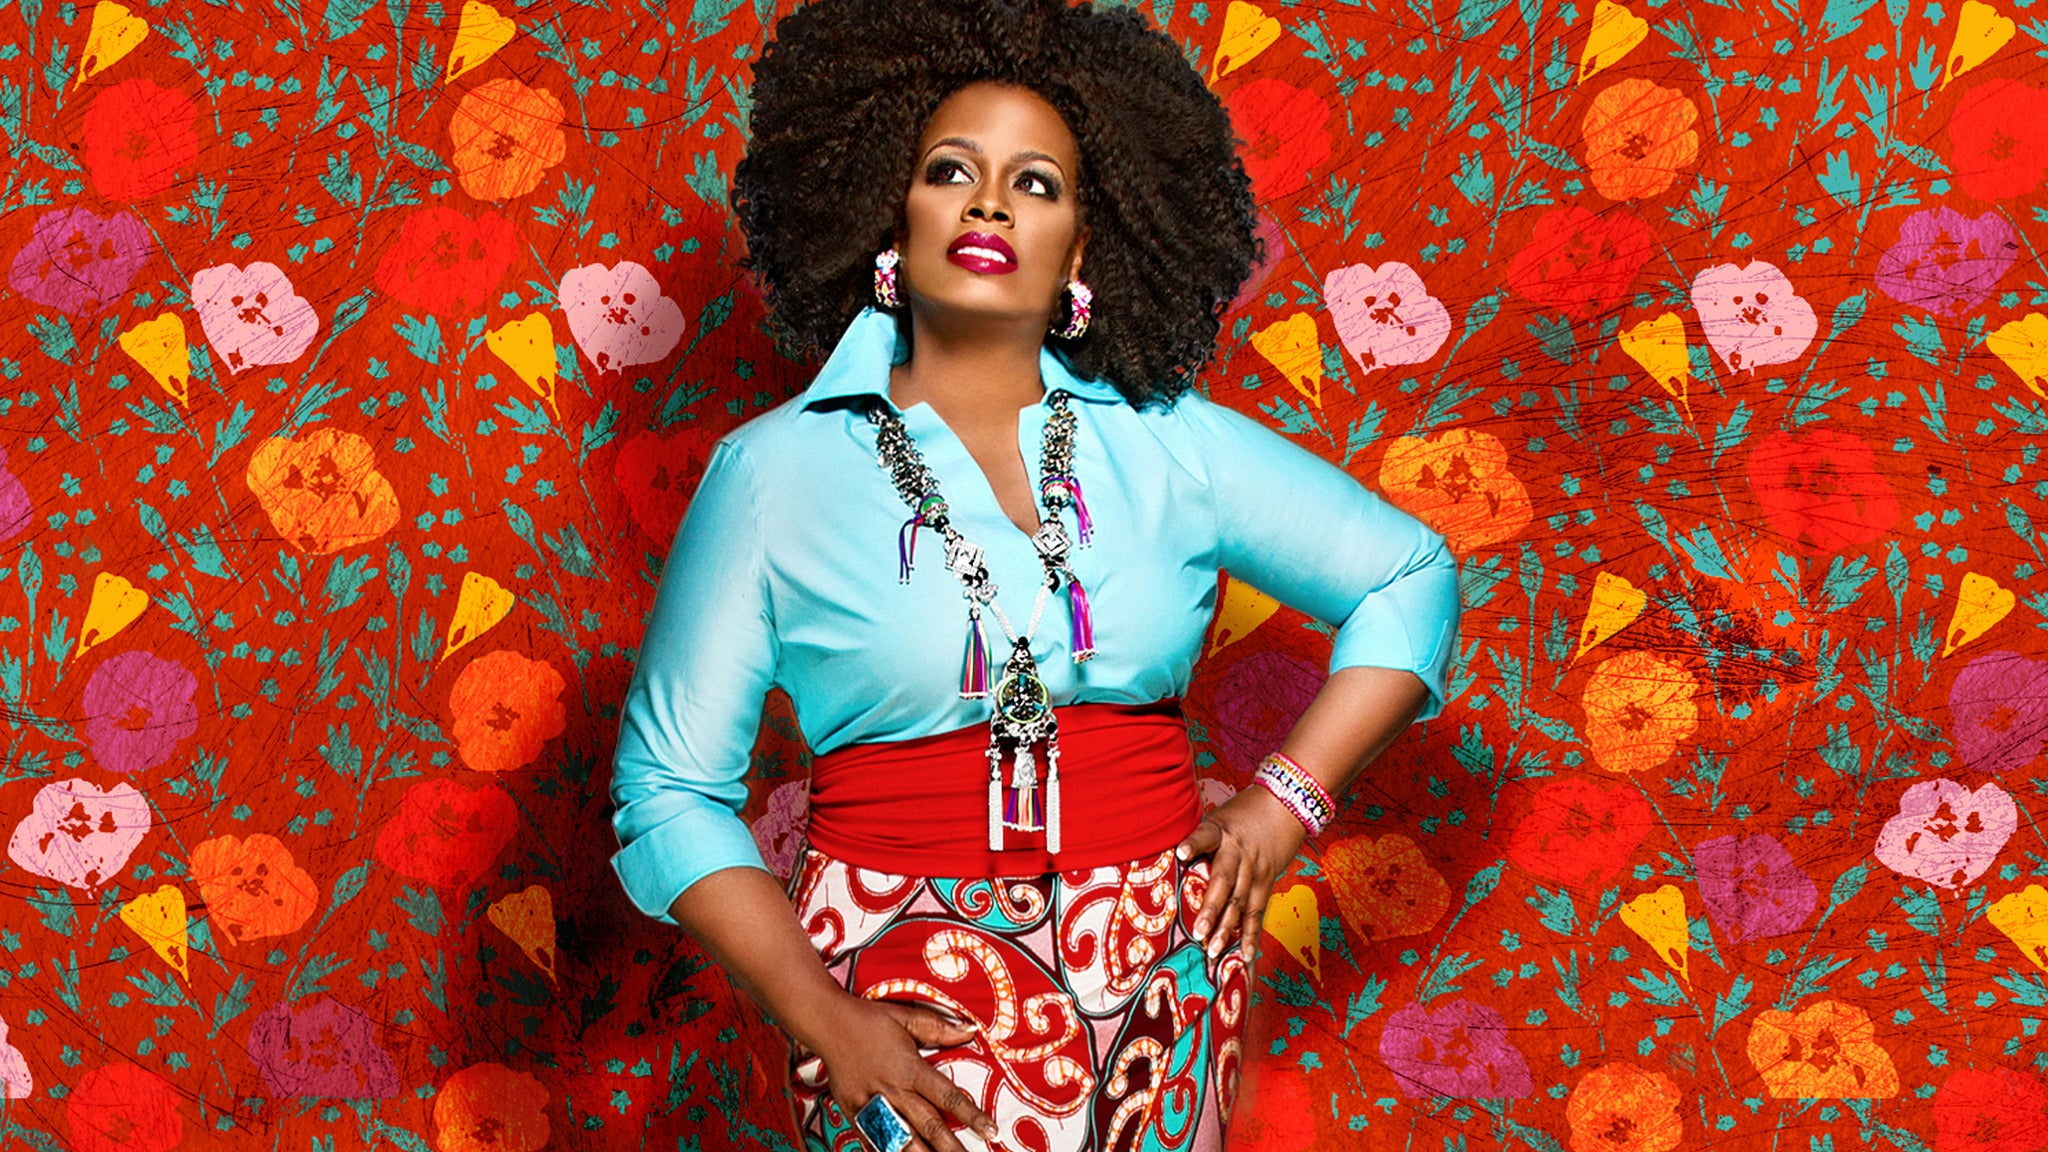 Dianne Reeves / Artemis at New Jersey Performing Arts Center